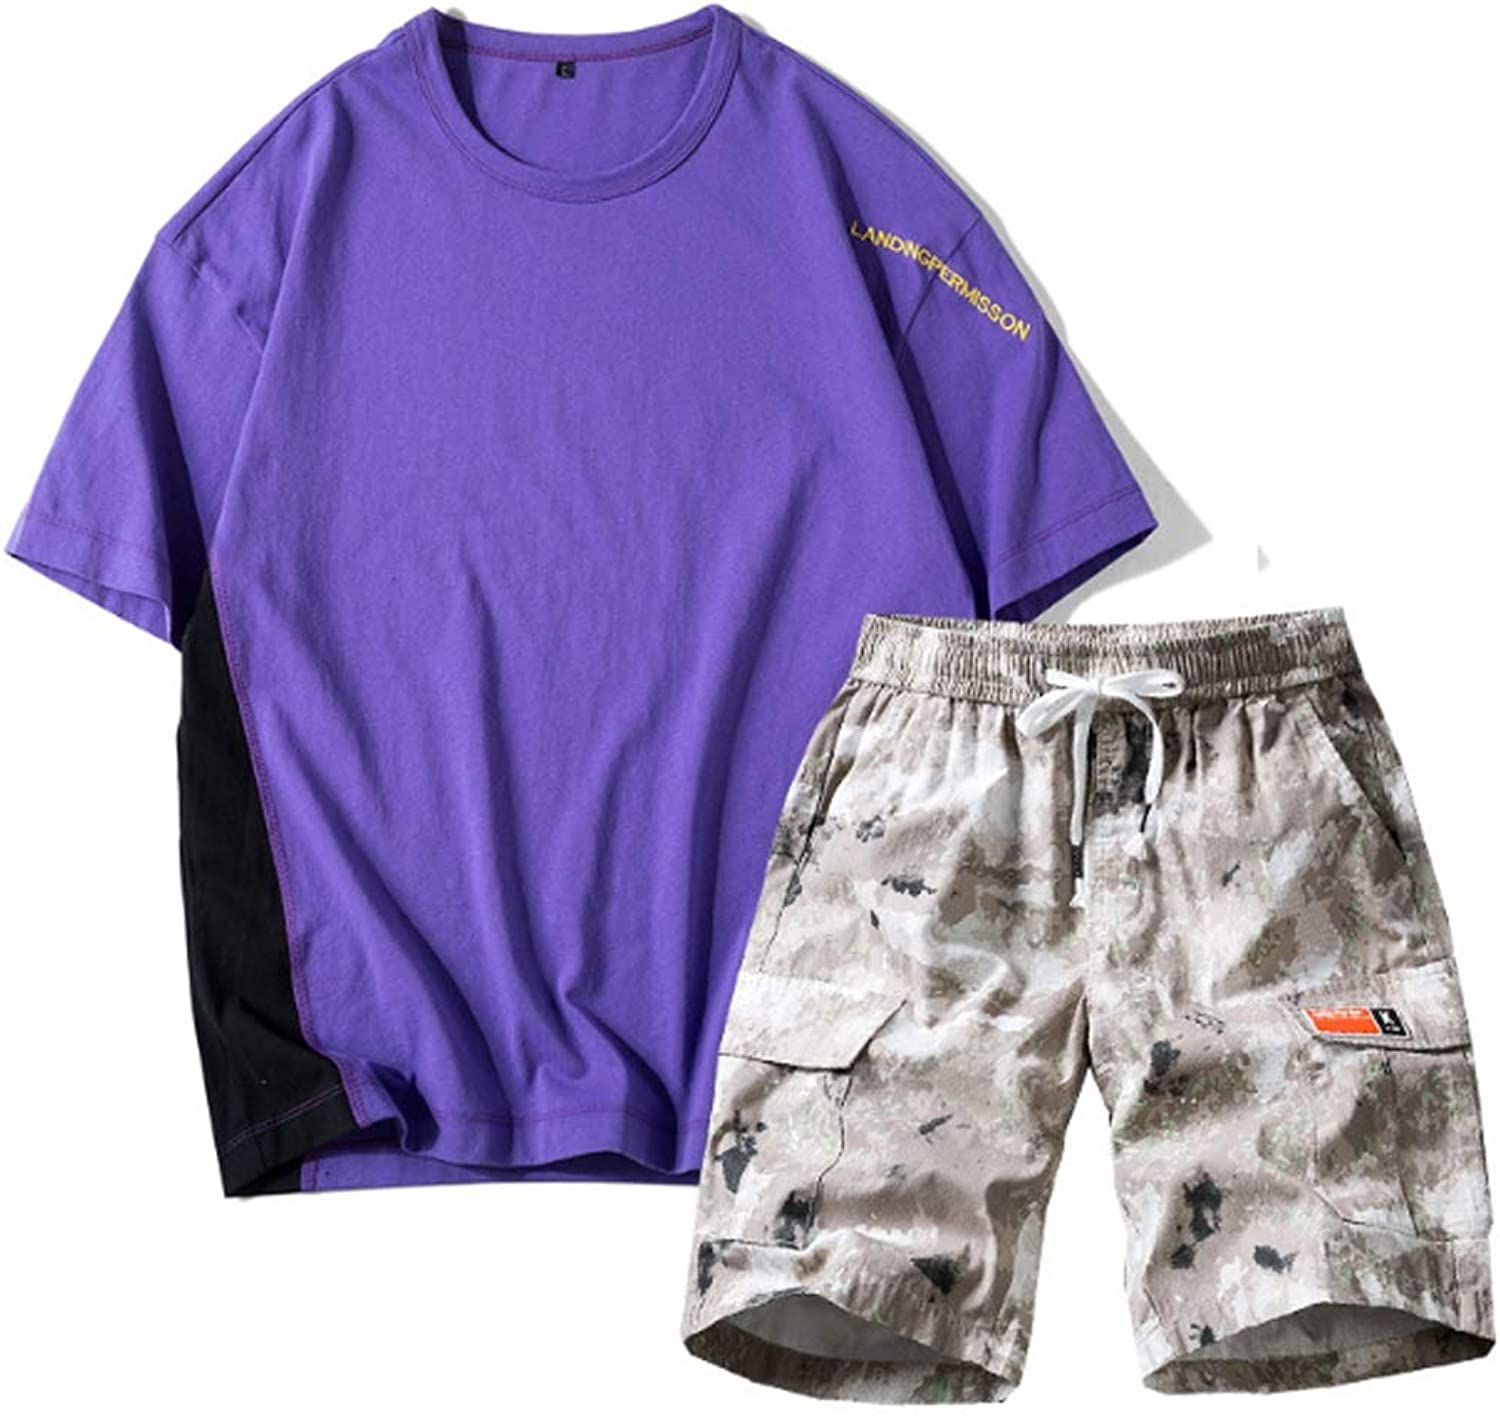 Two-Piece Men's Casual Wear Sports and Leisure Suits Cotton Sportswear Casual Short-Sleeved + Shorts